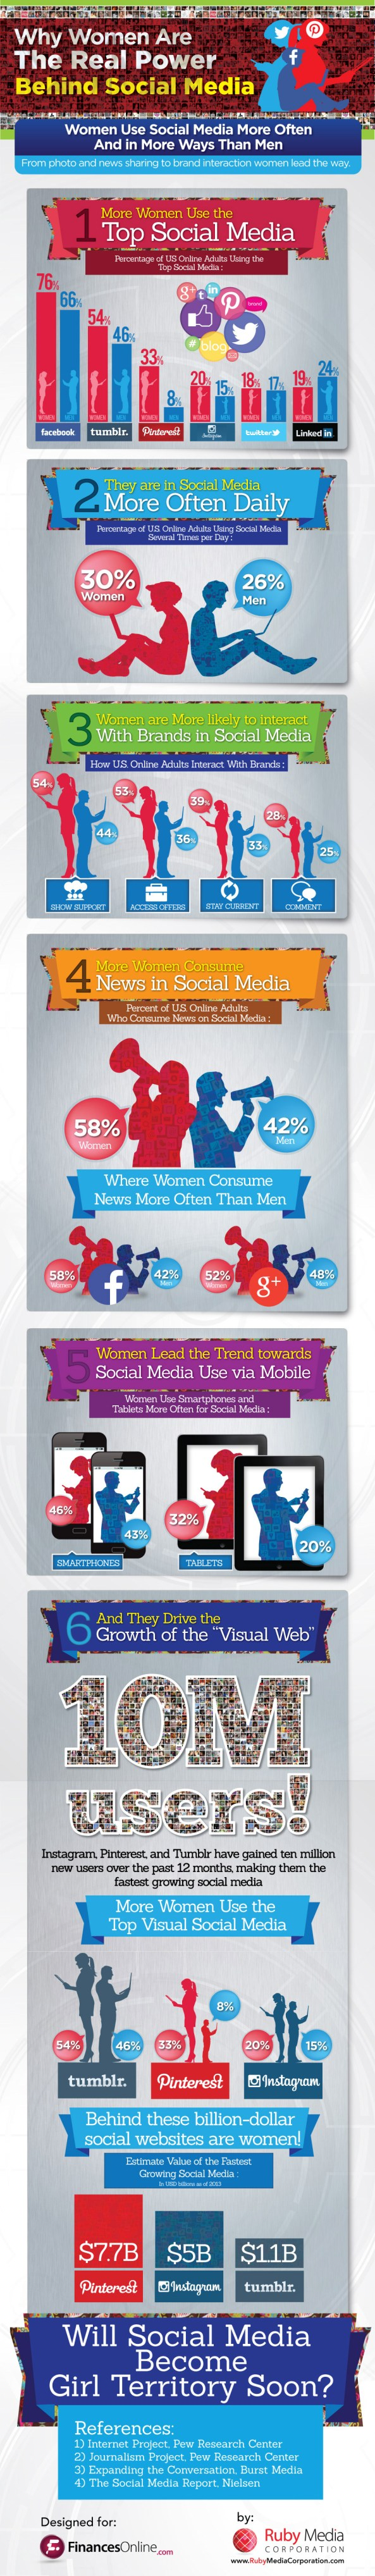 1393972619-women-dominate-every-social-media-network-except-one-infographic